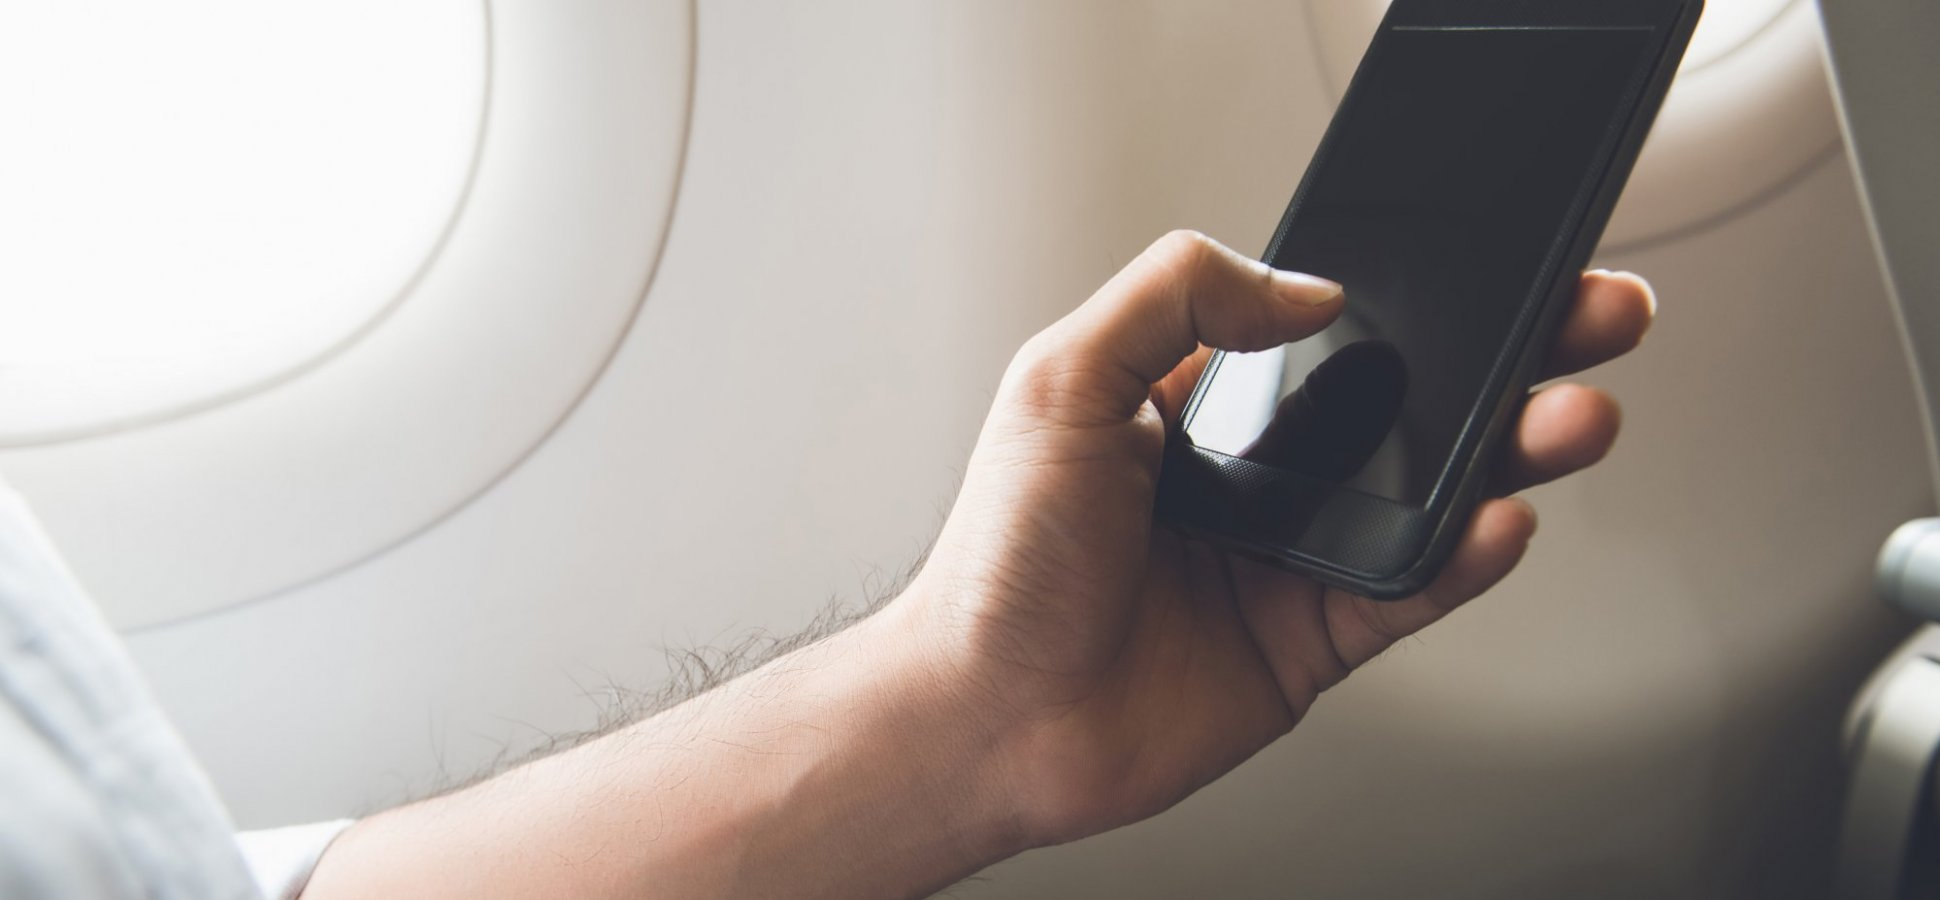 It's the Most Annoying Thing You Can Do on a Flight, and a Shocking Number Want Consequences